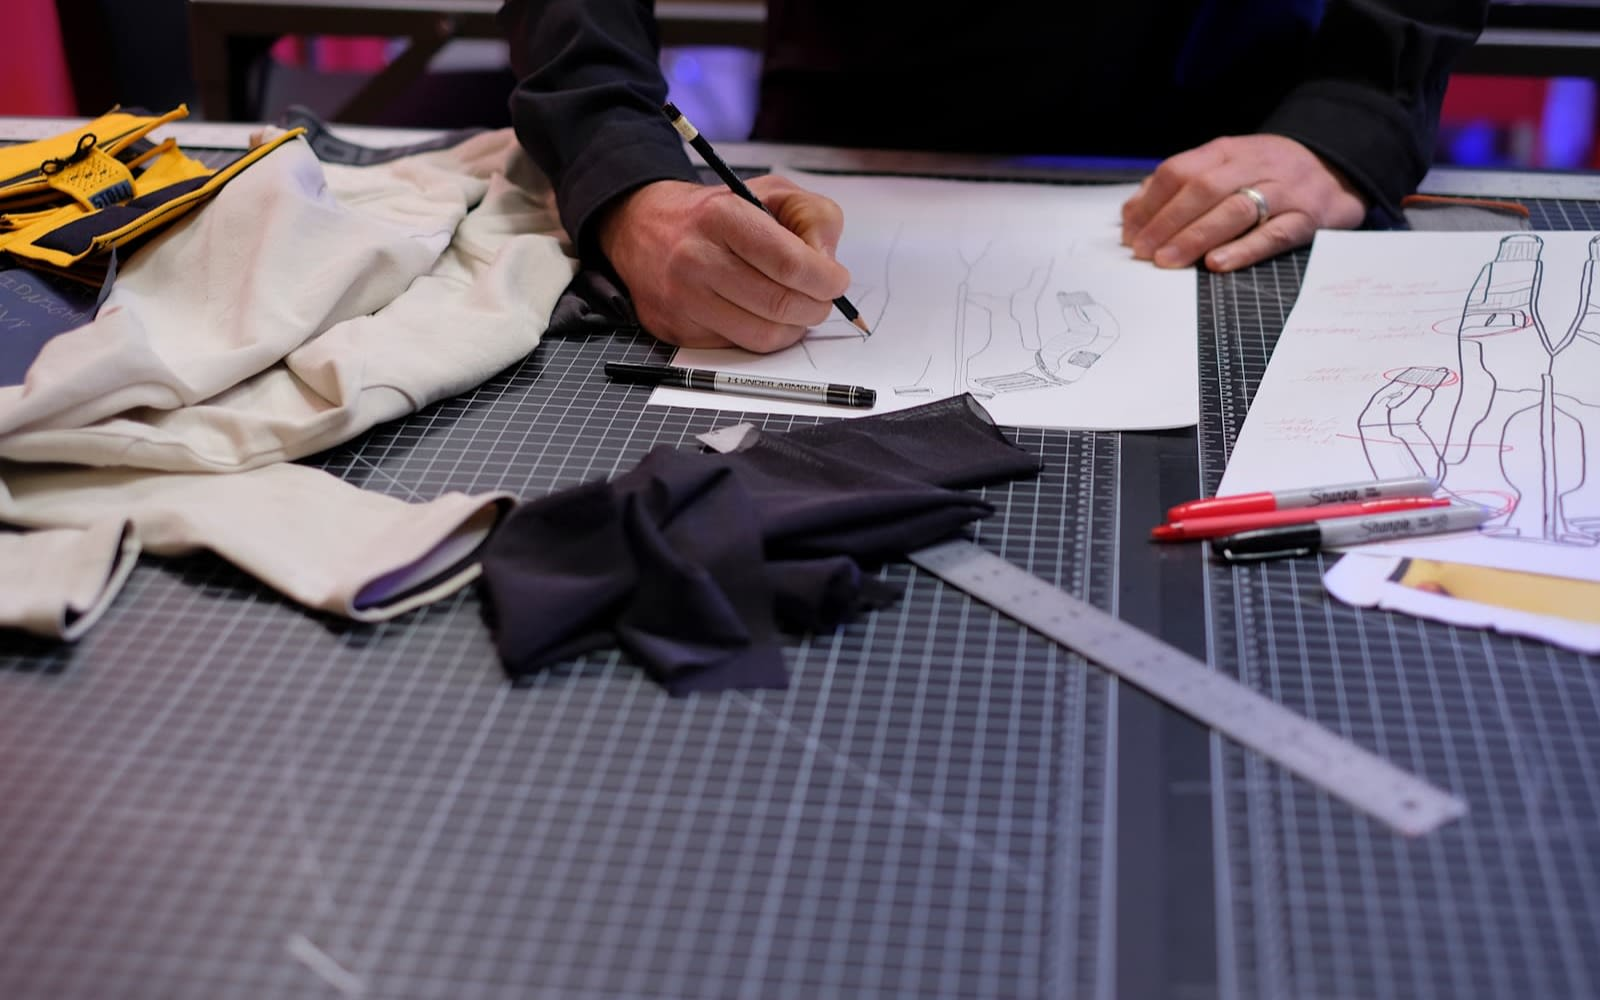 Design instruments on a table, with hands drawing clothing just in view